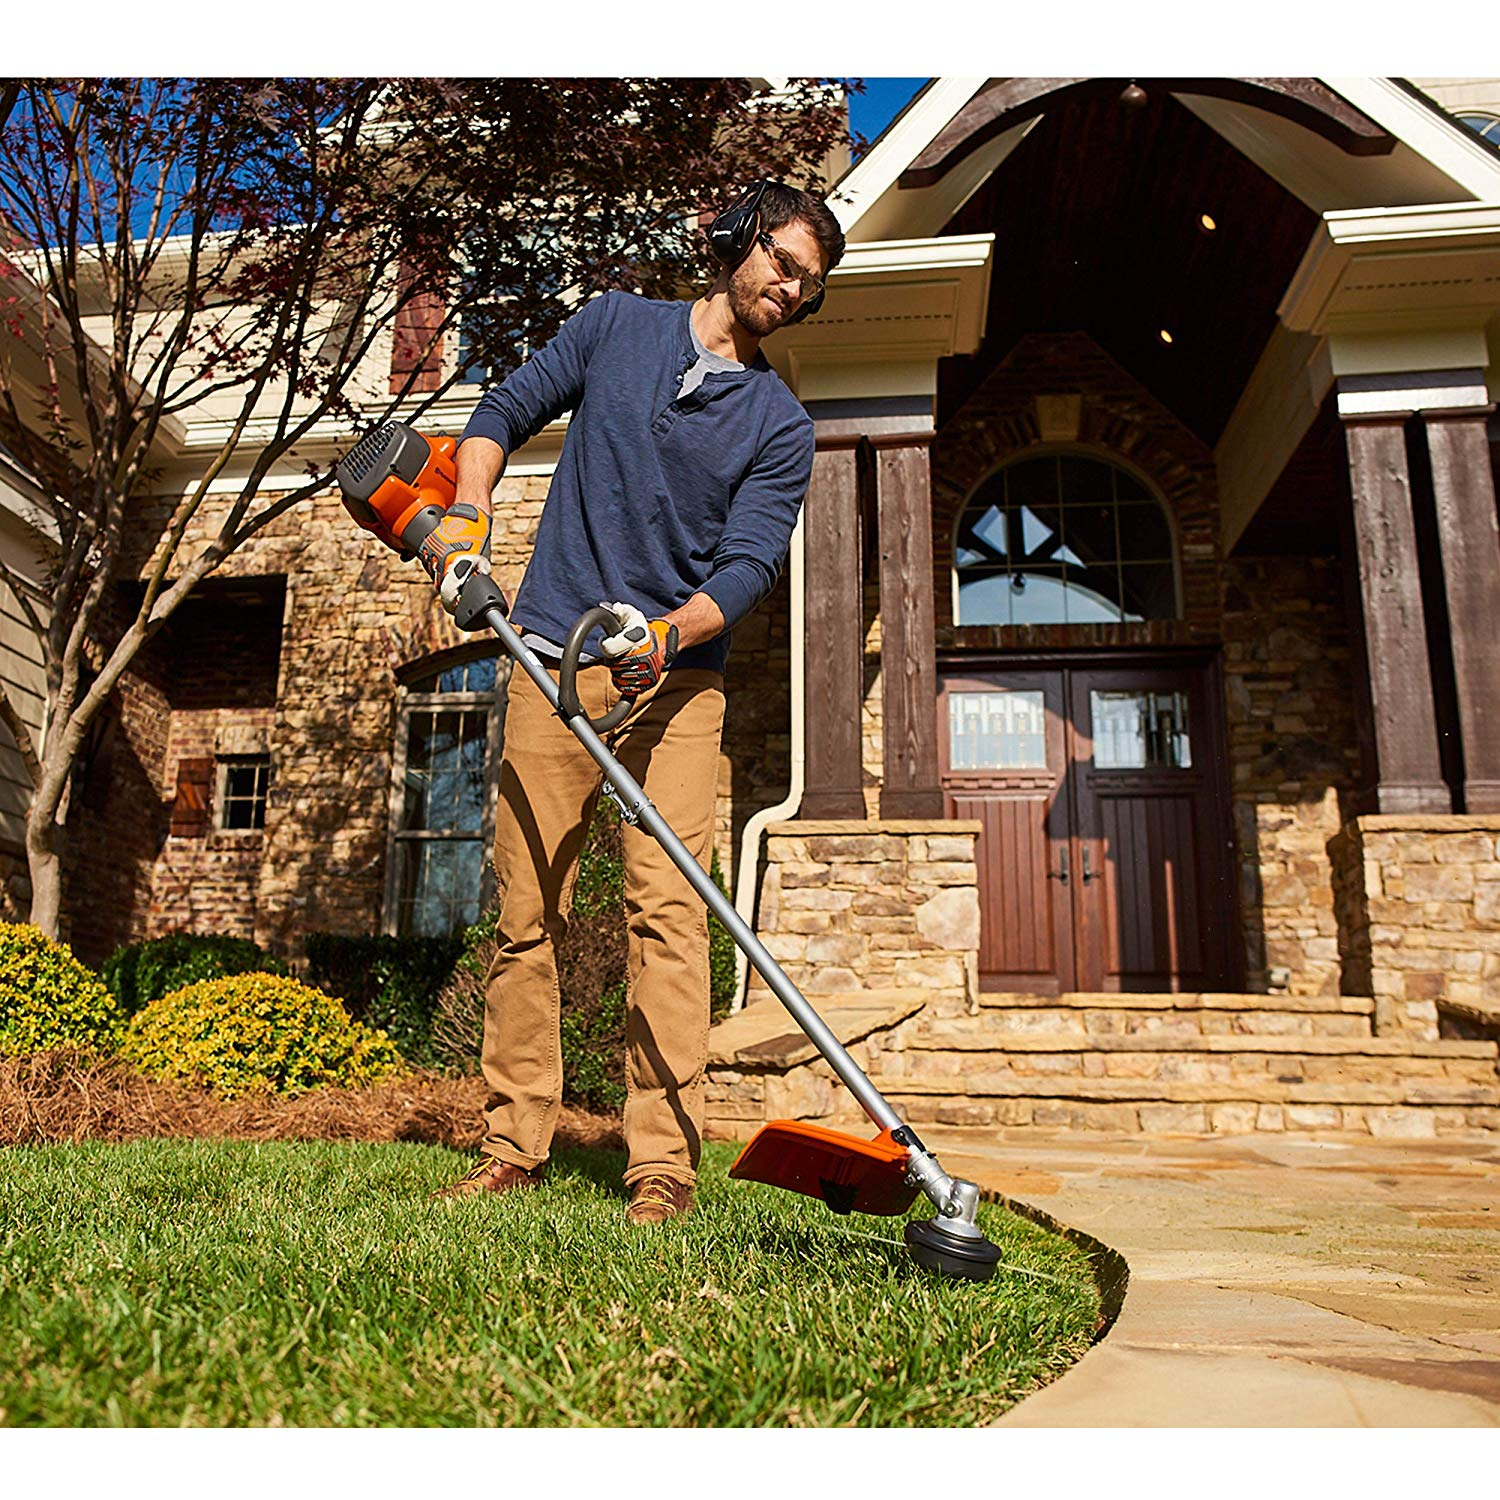 Best Gas String Trimmer 2019 - Best Product Review